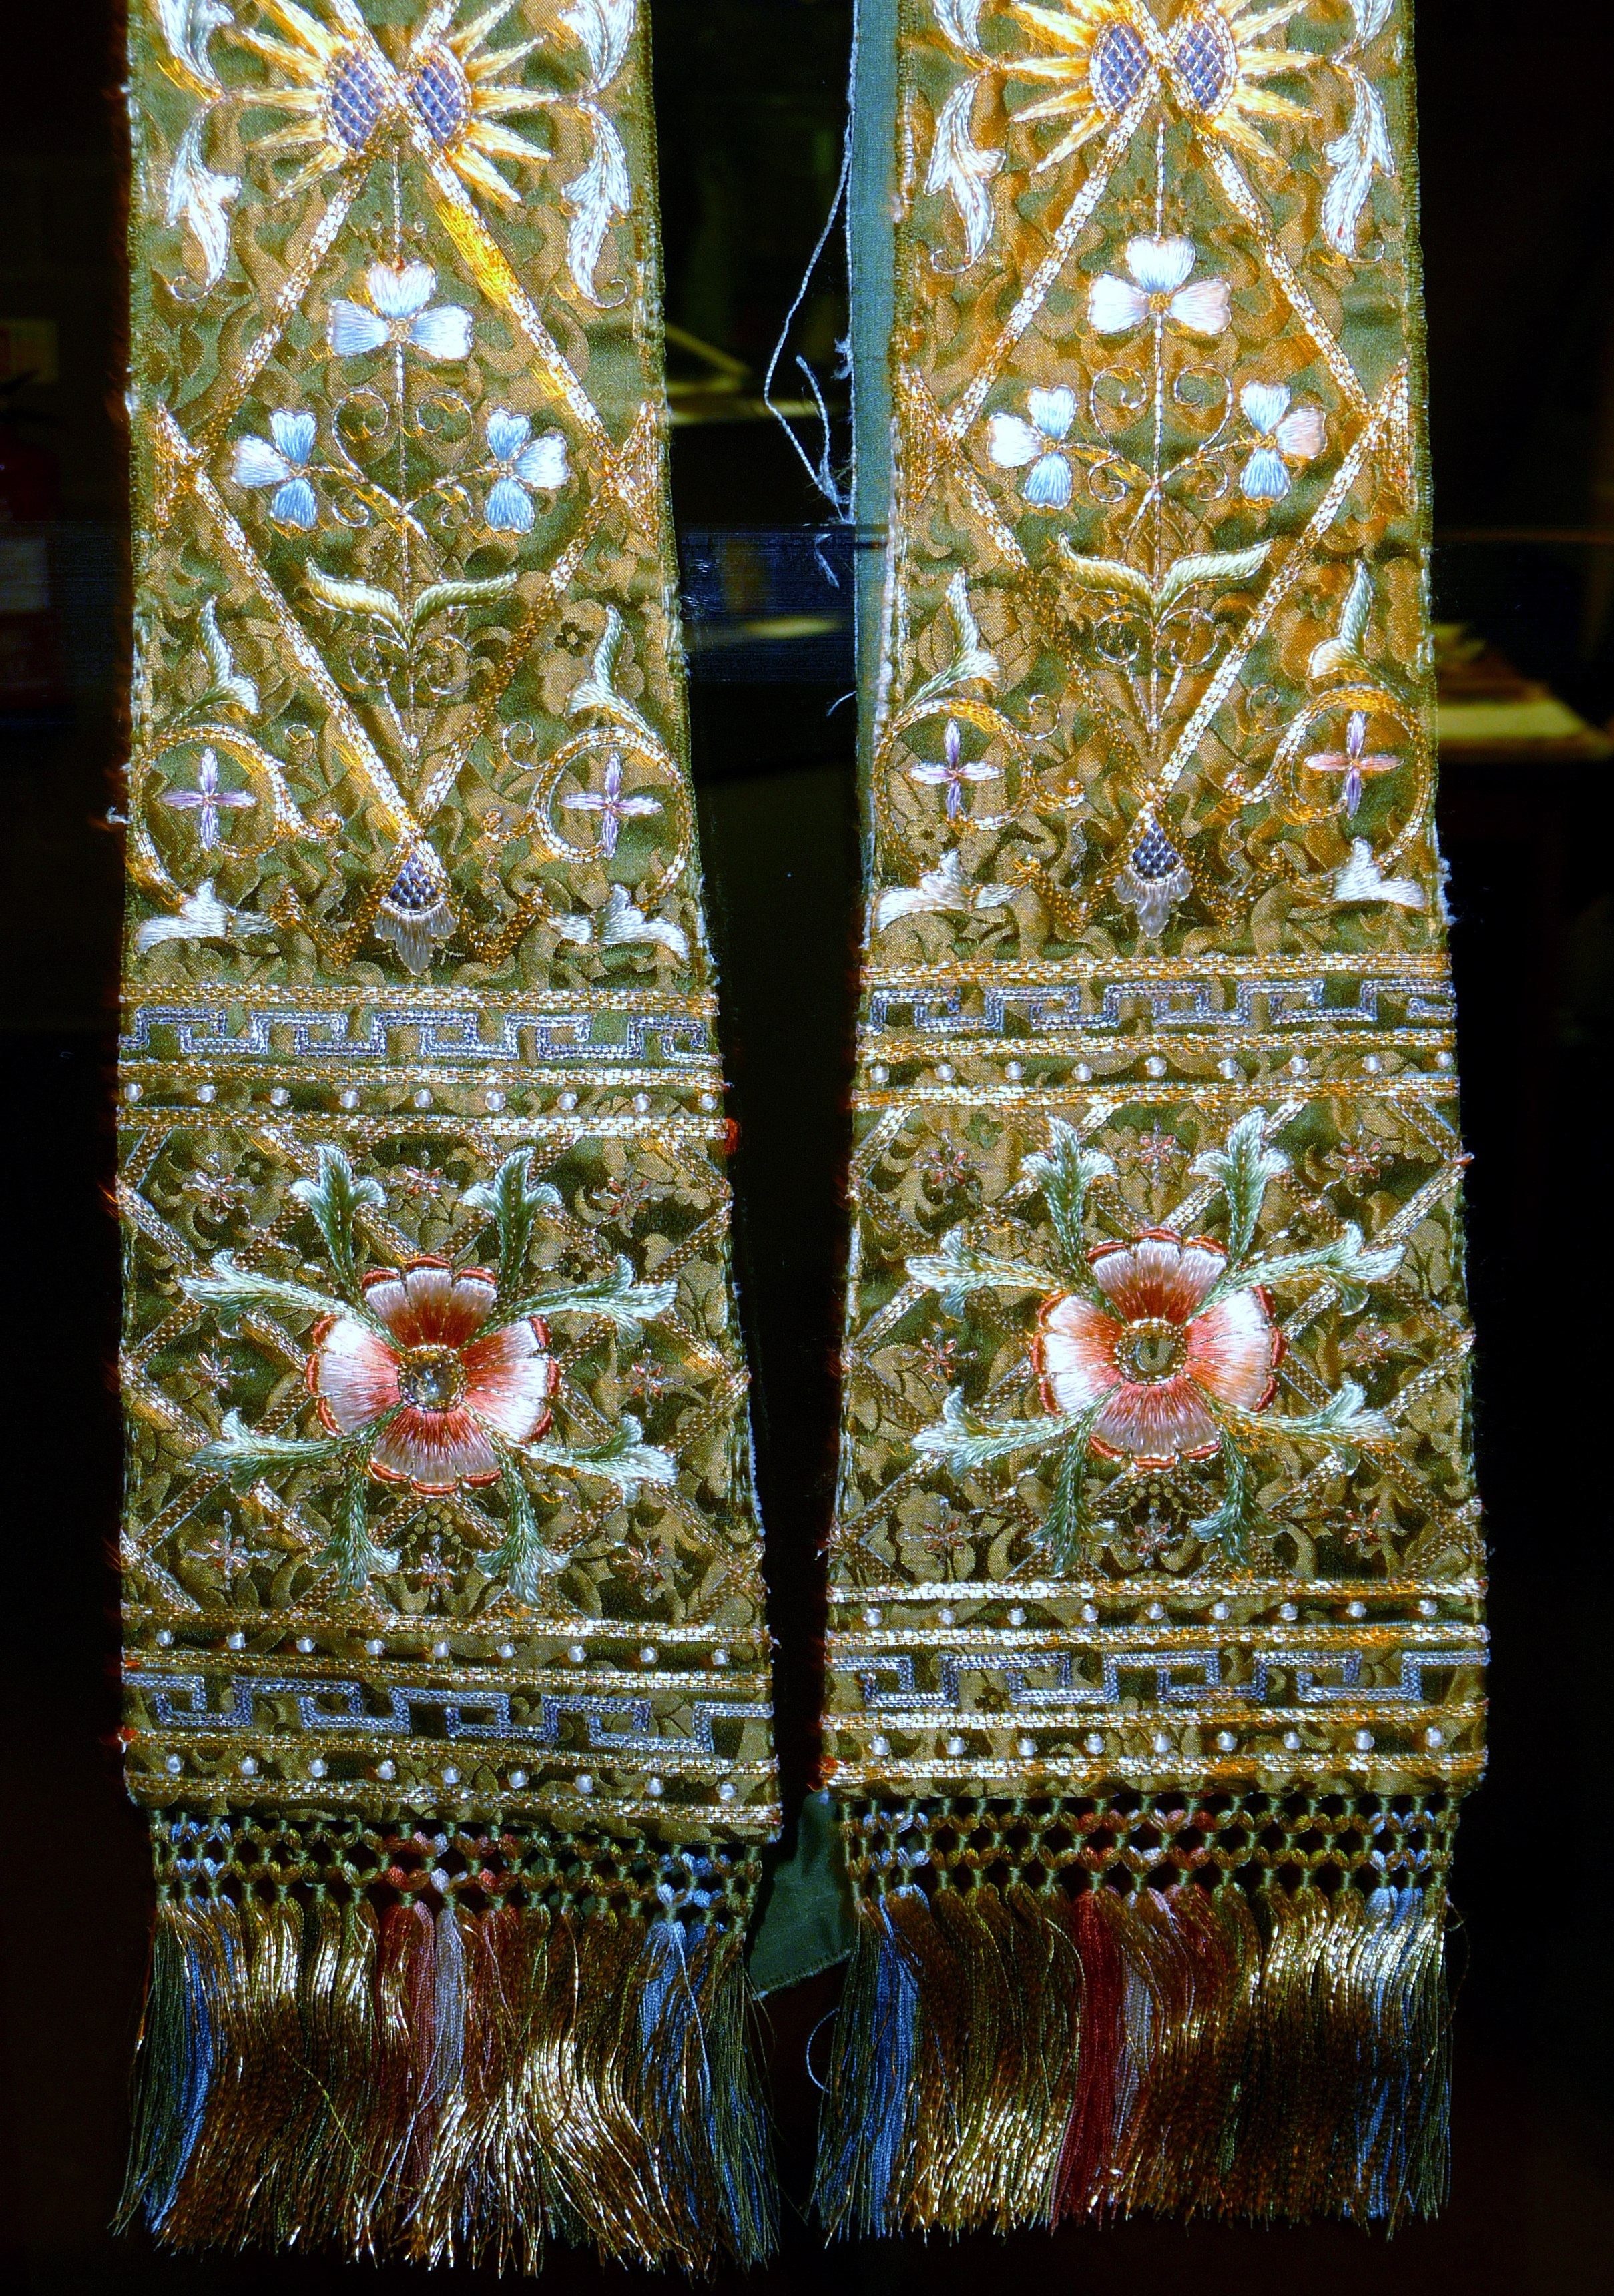 embroidered Stole on display in Lady Hoare Gallery of Liverpool Cathedral